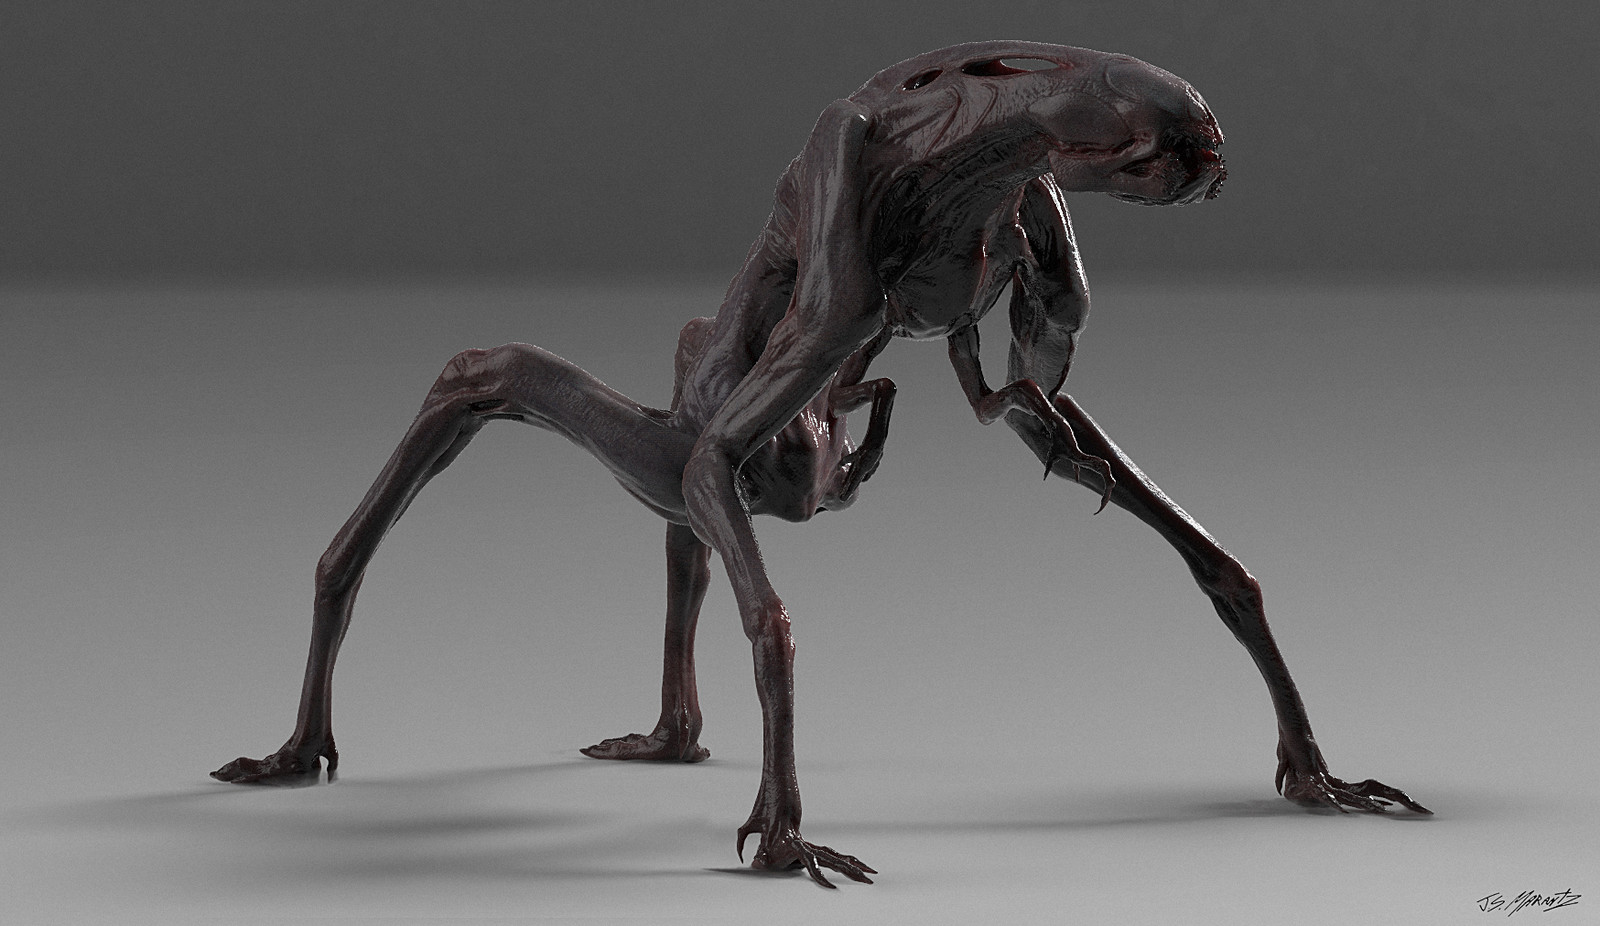 Alien Designs for 10 Cloverfield Lane